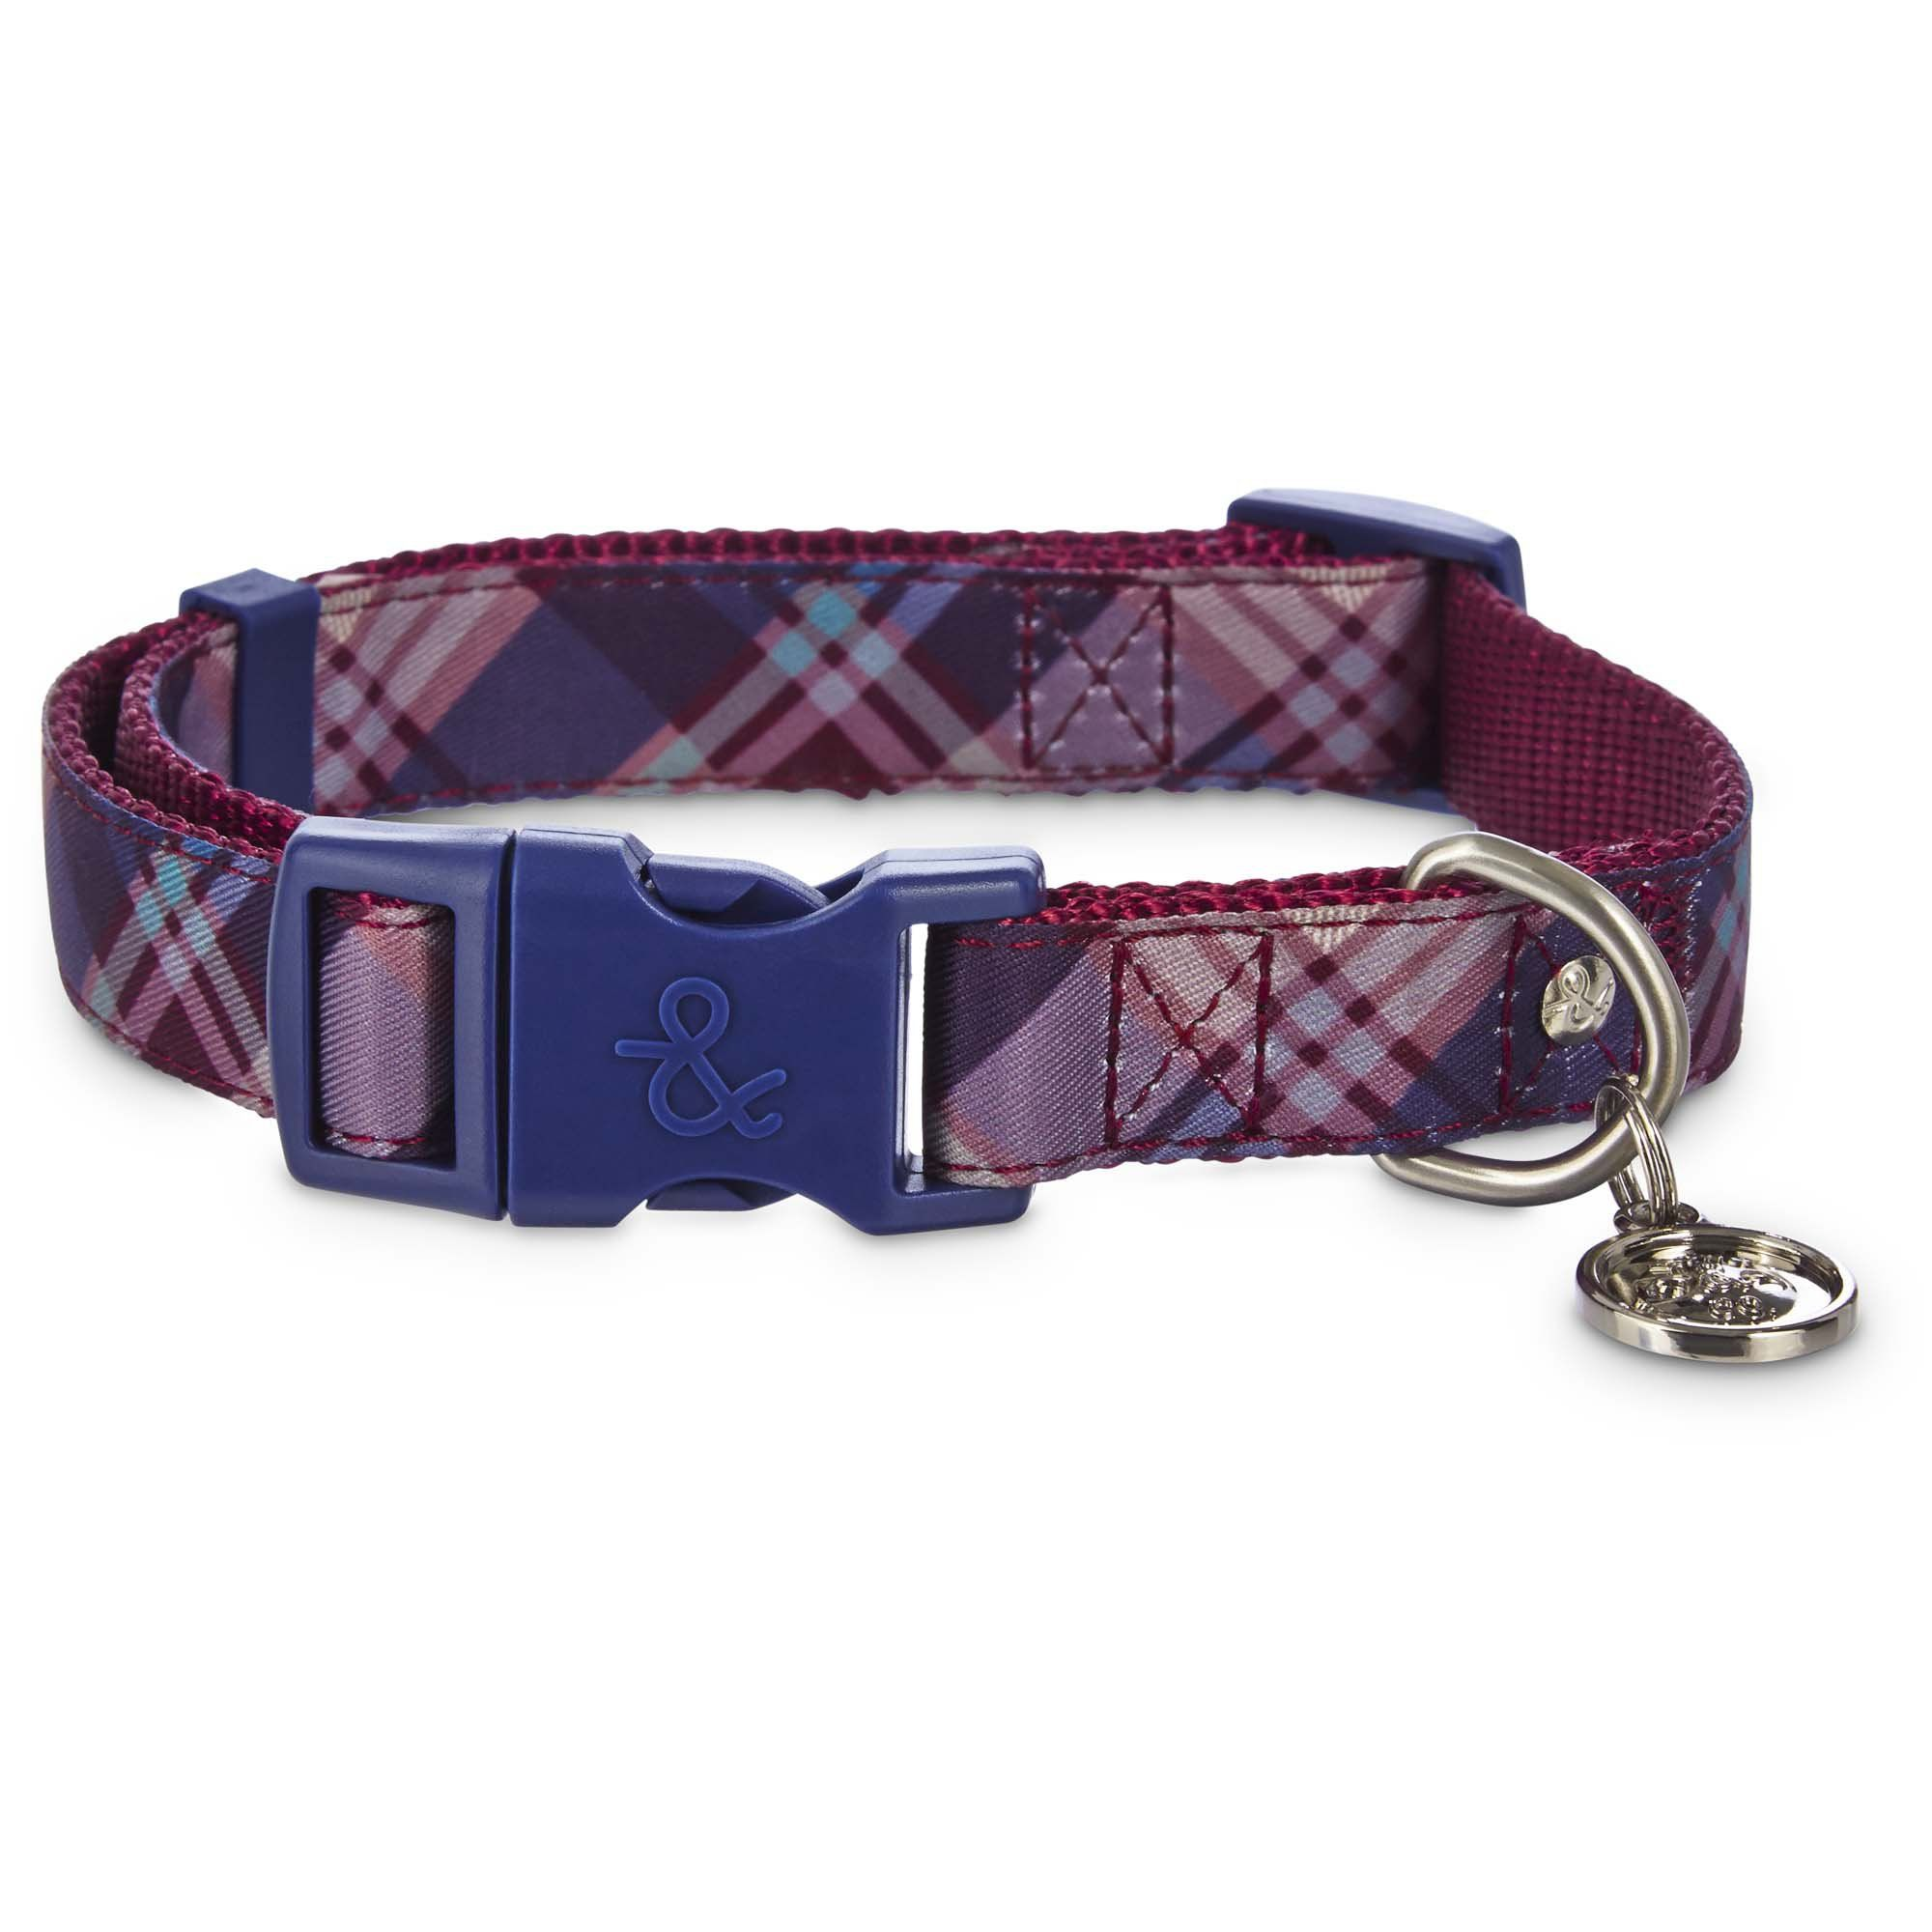 Bond Co Burgundy Plaid Adjustable Dog Collar Get Your Posh Pup Ready To Parade The Sidewalks In The Sophisticated Styles From Th Petco Burgundy Dog Collar